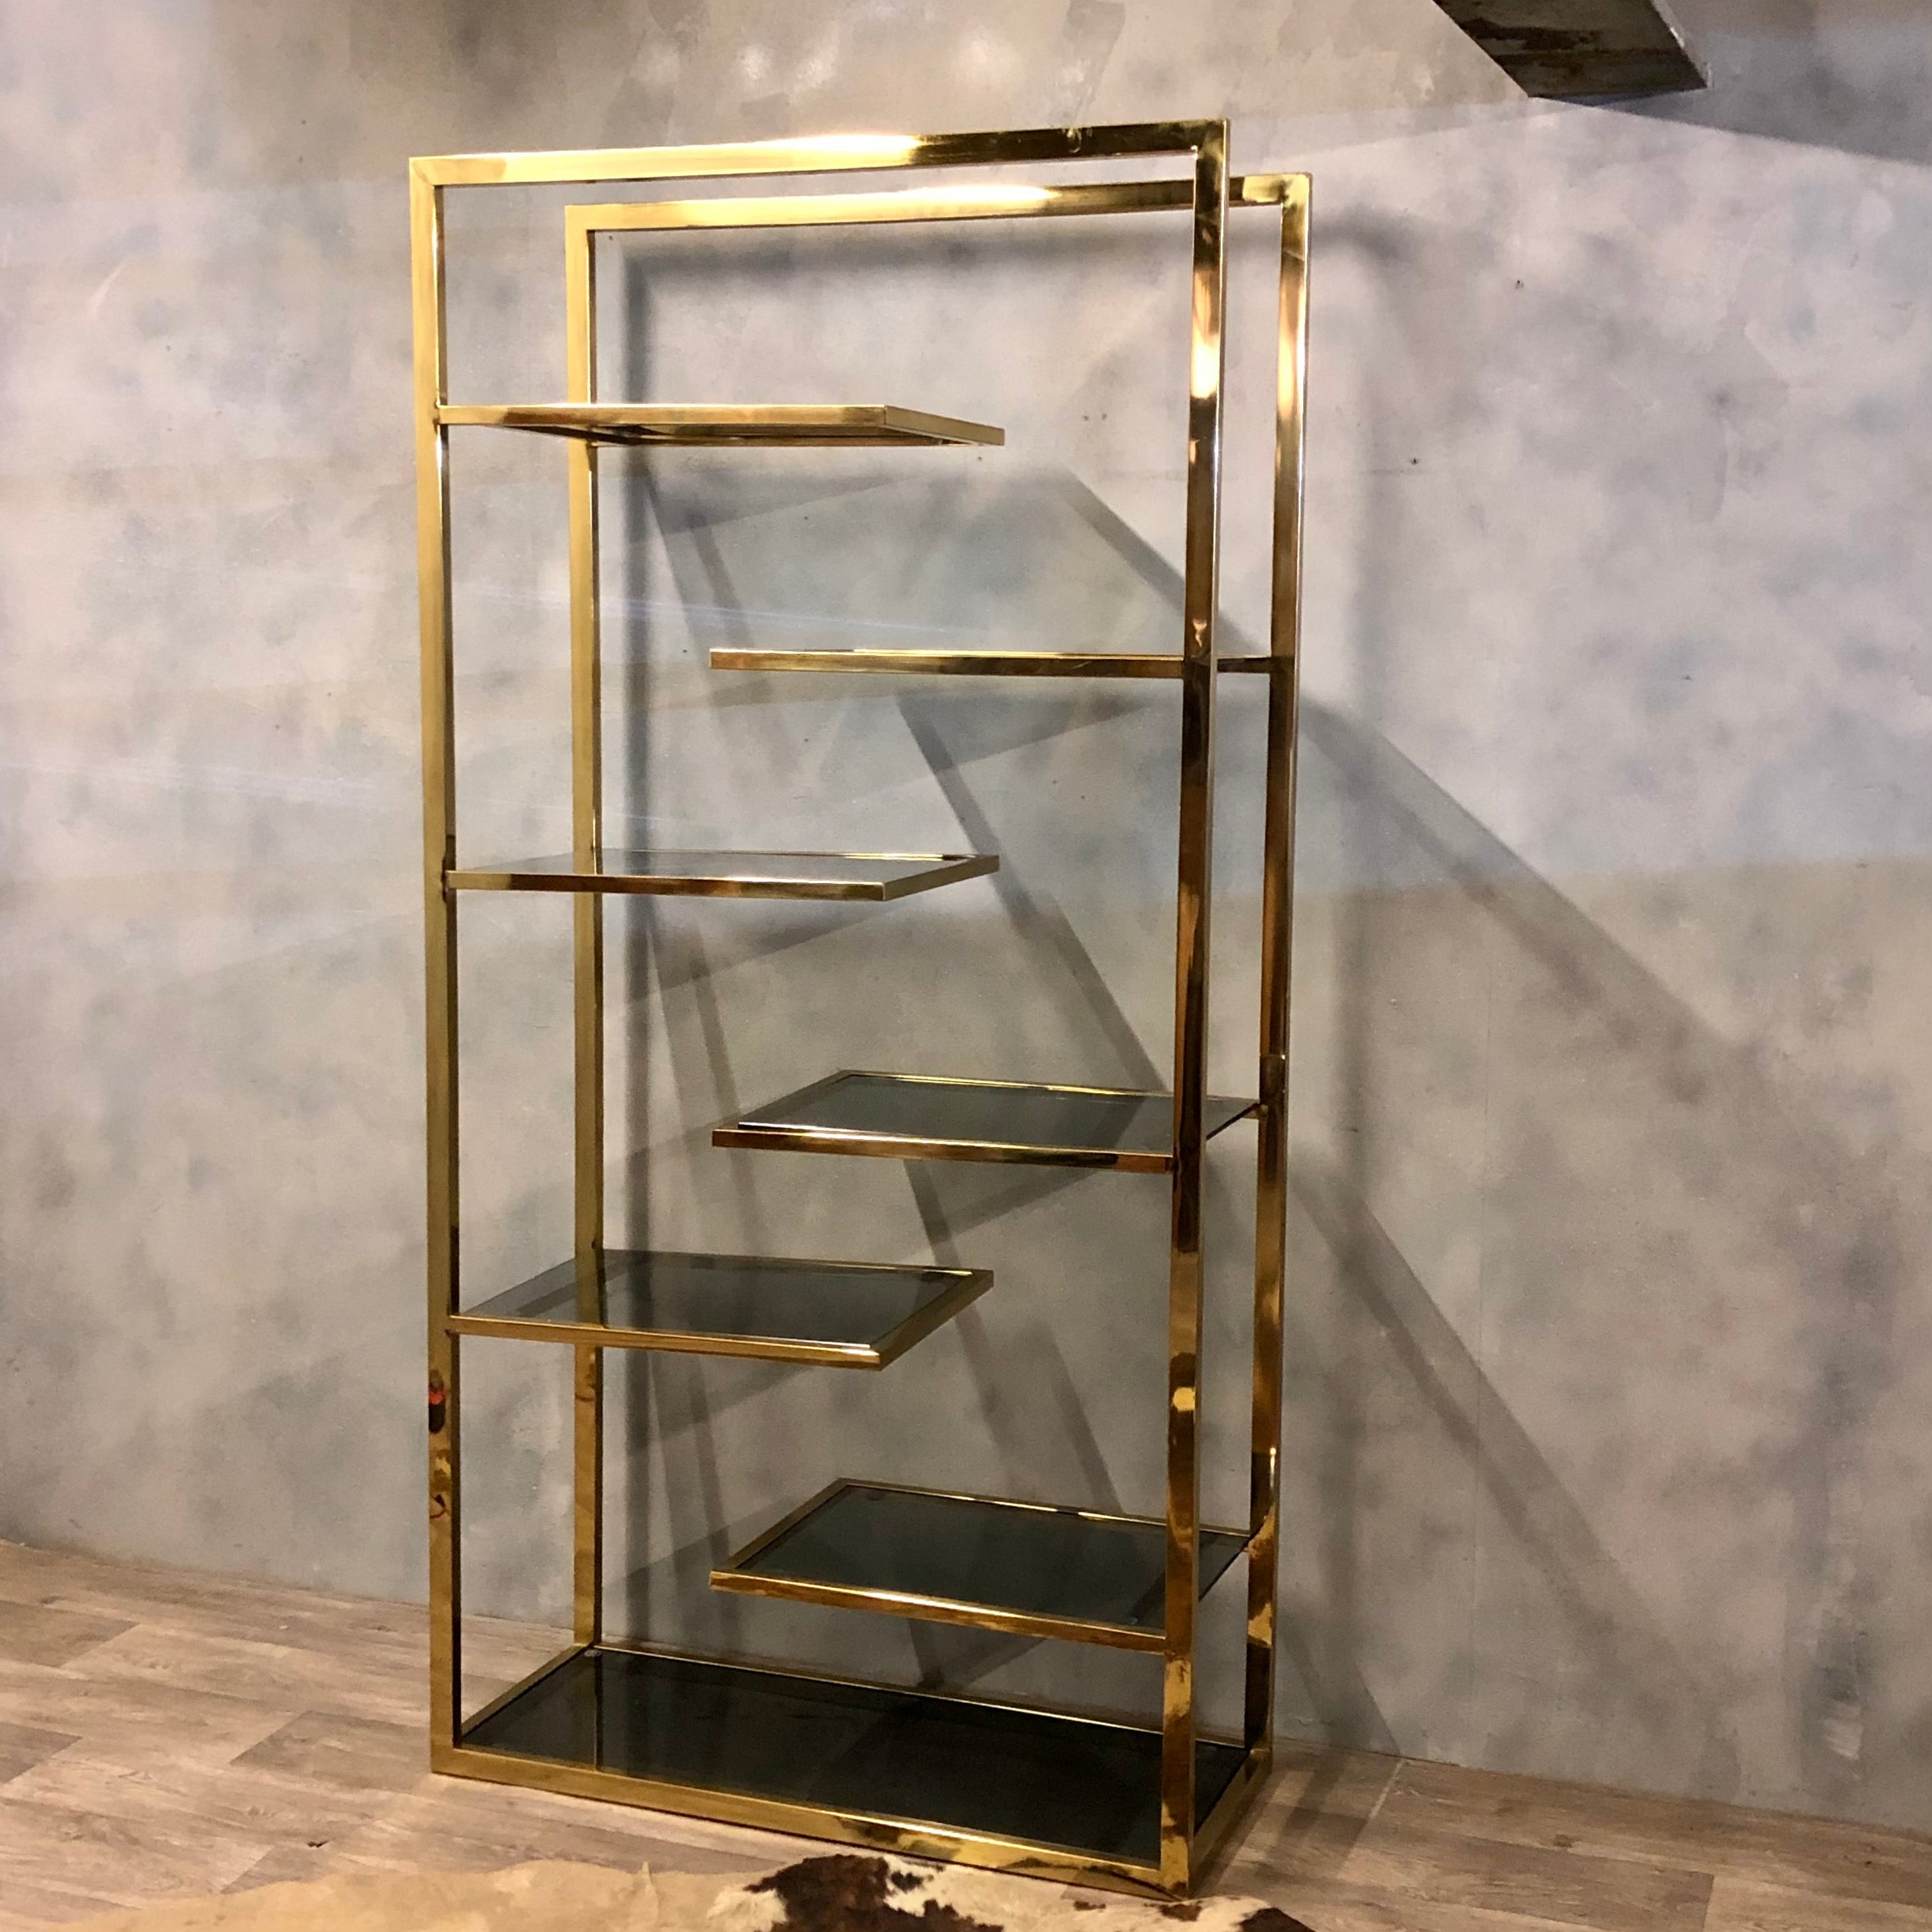 Room divider in bronze steel